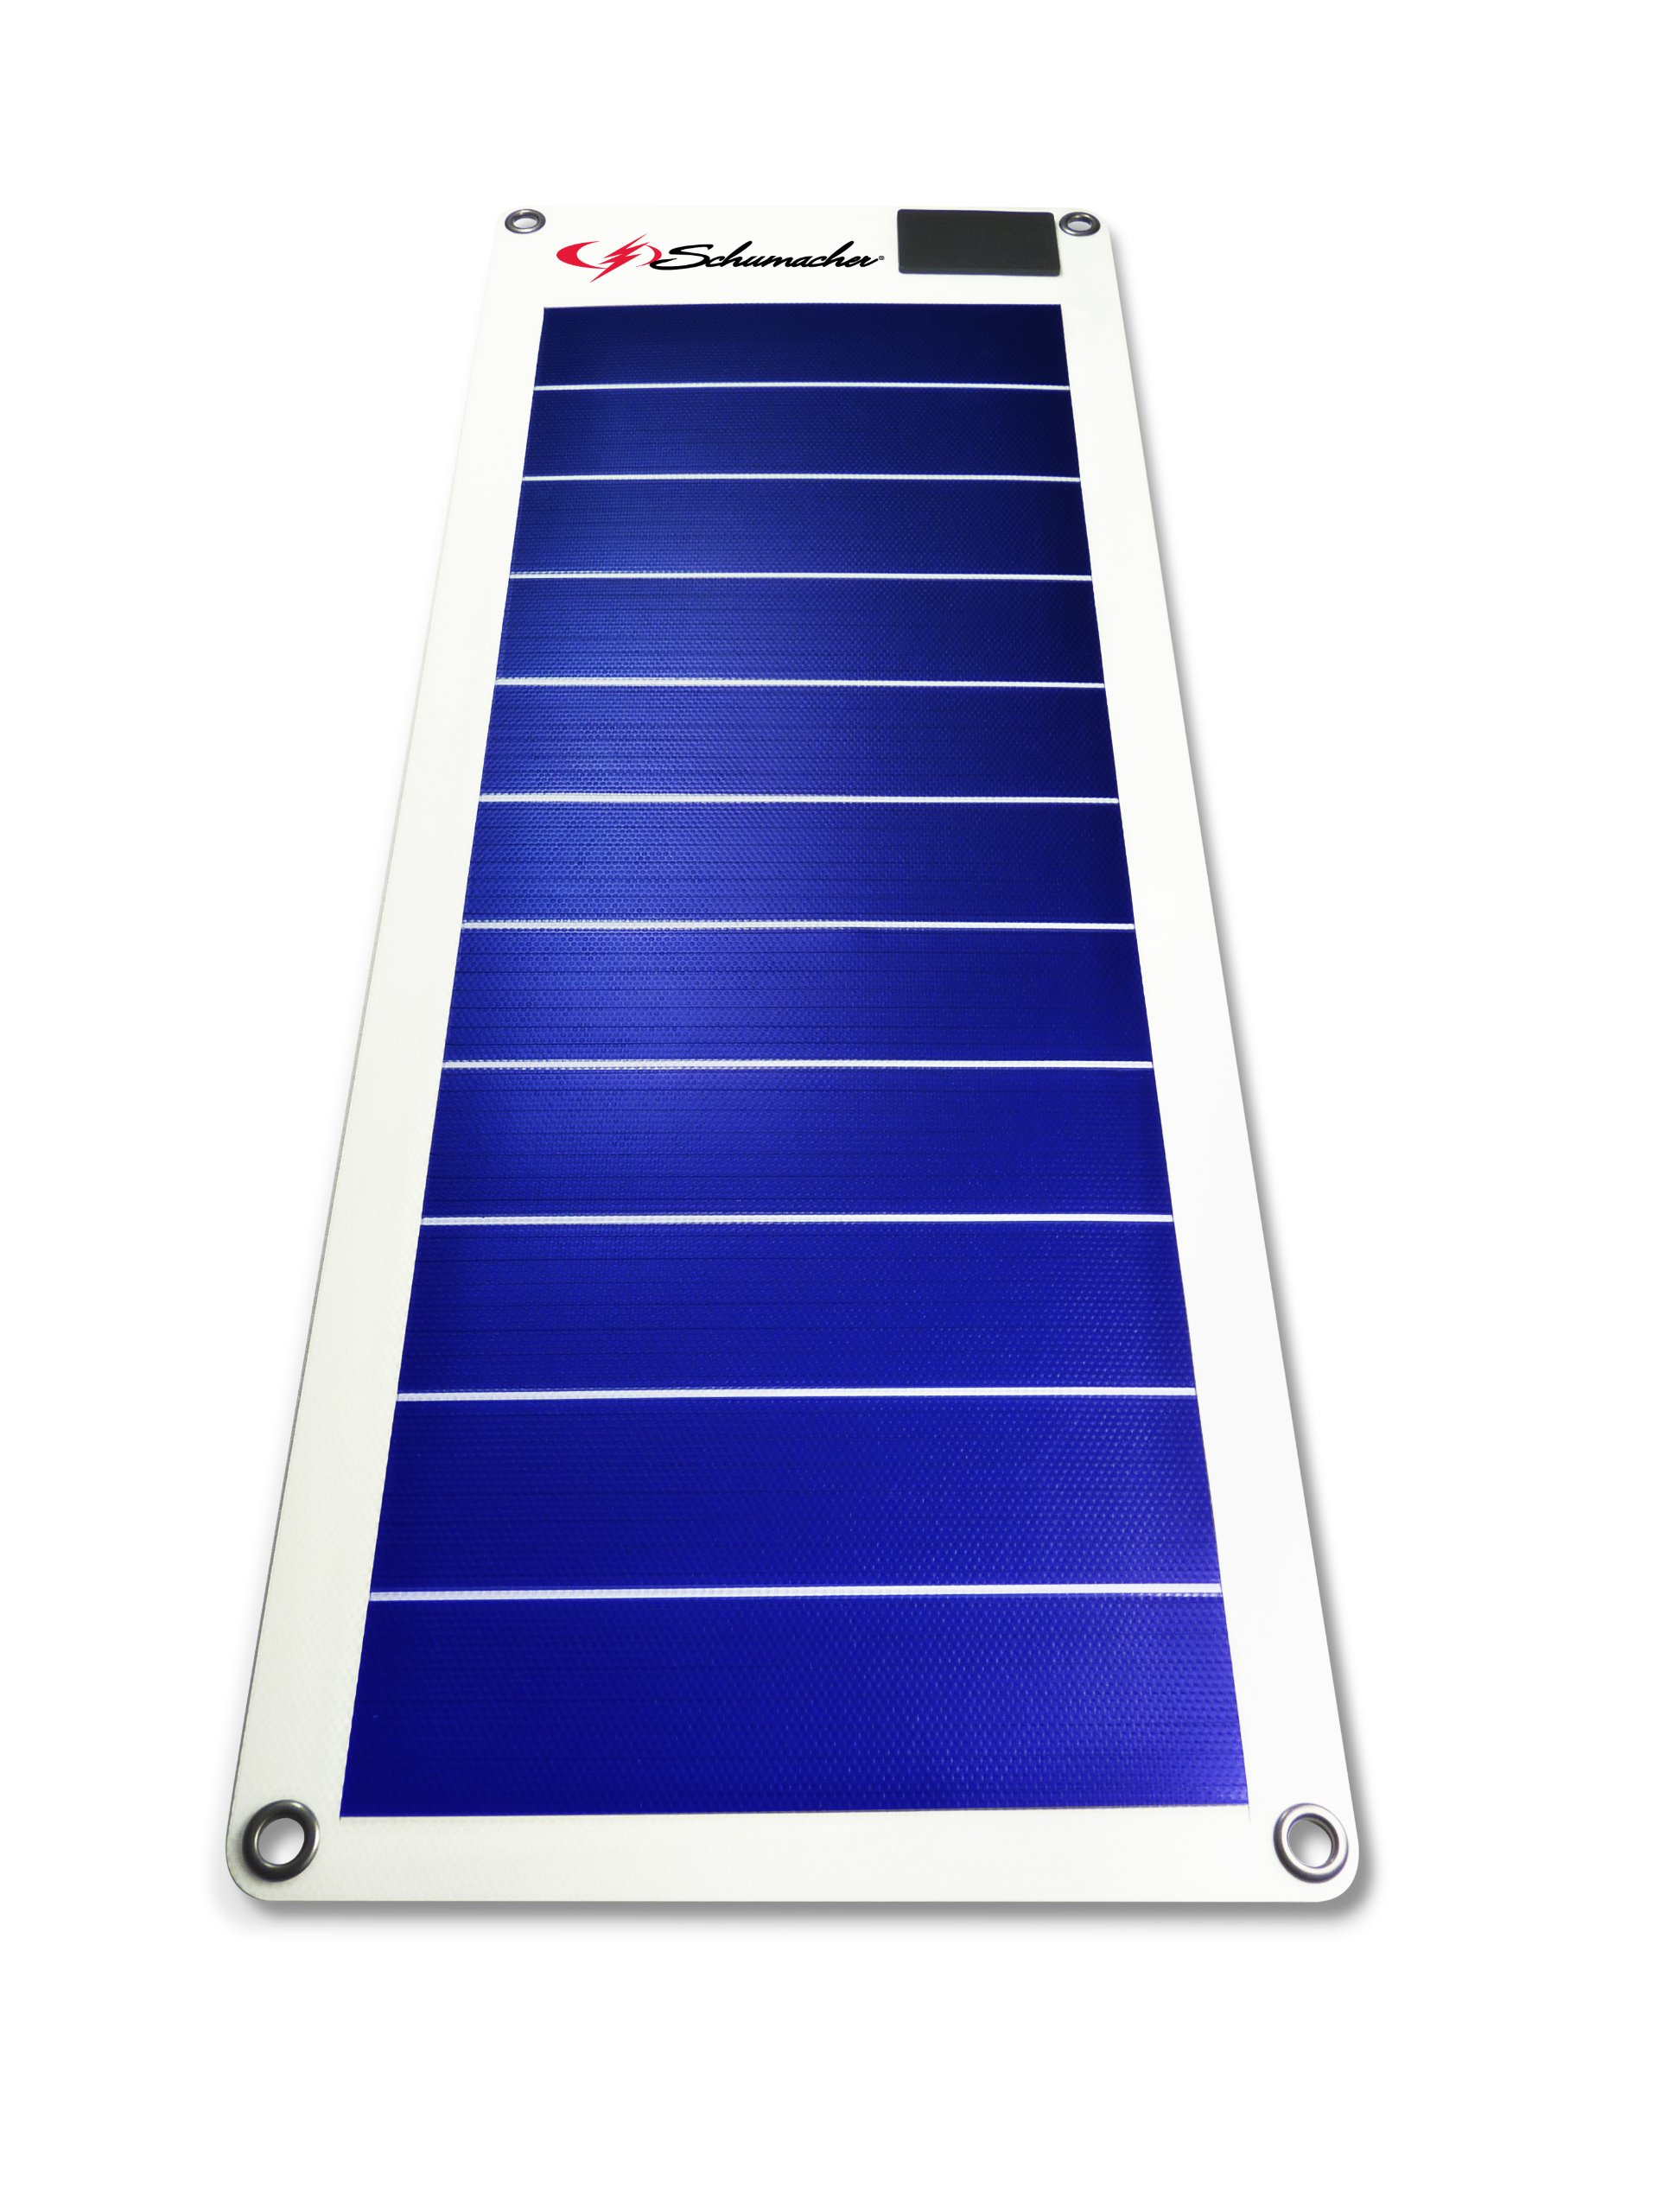 Schumacher SP-550 5.5W Roll-Able Solar Charger